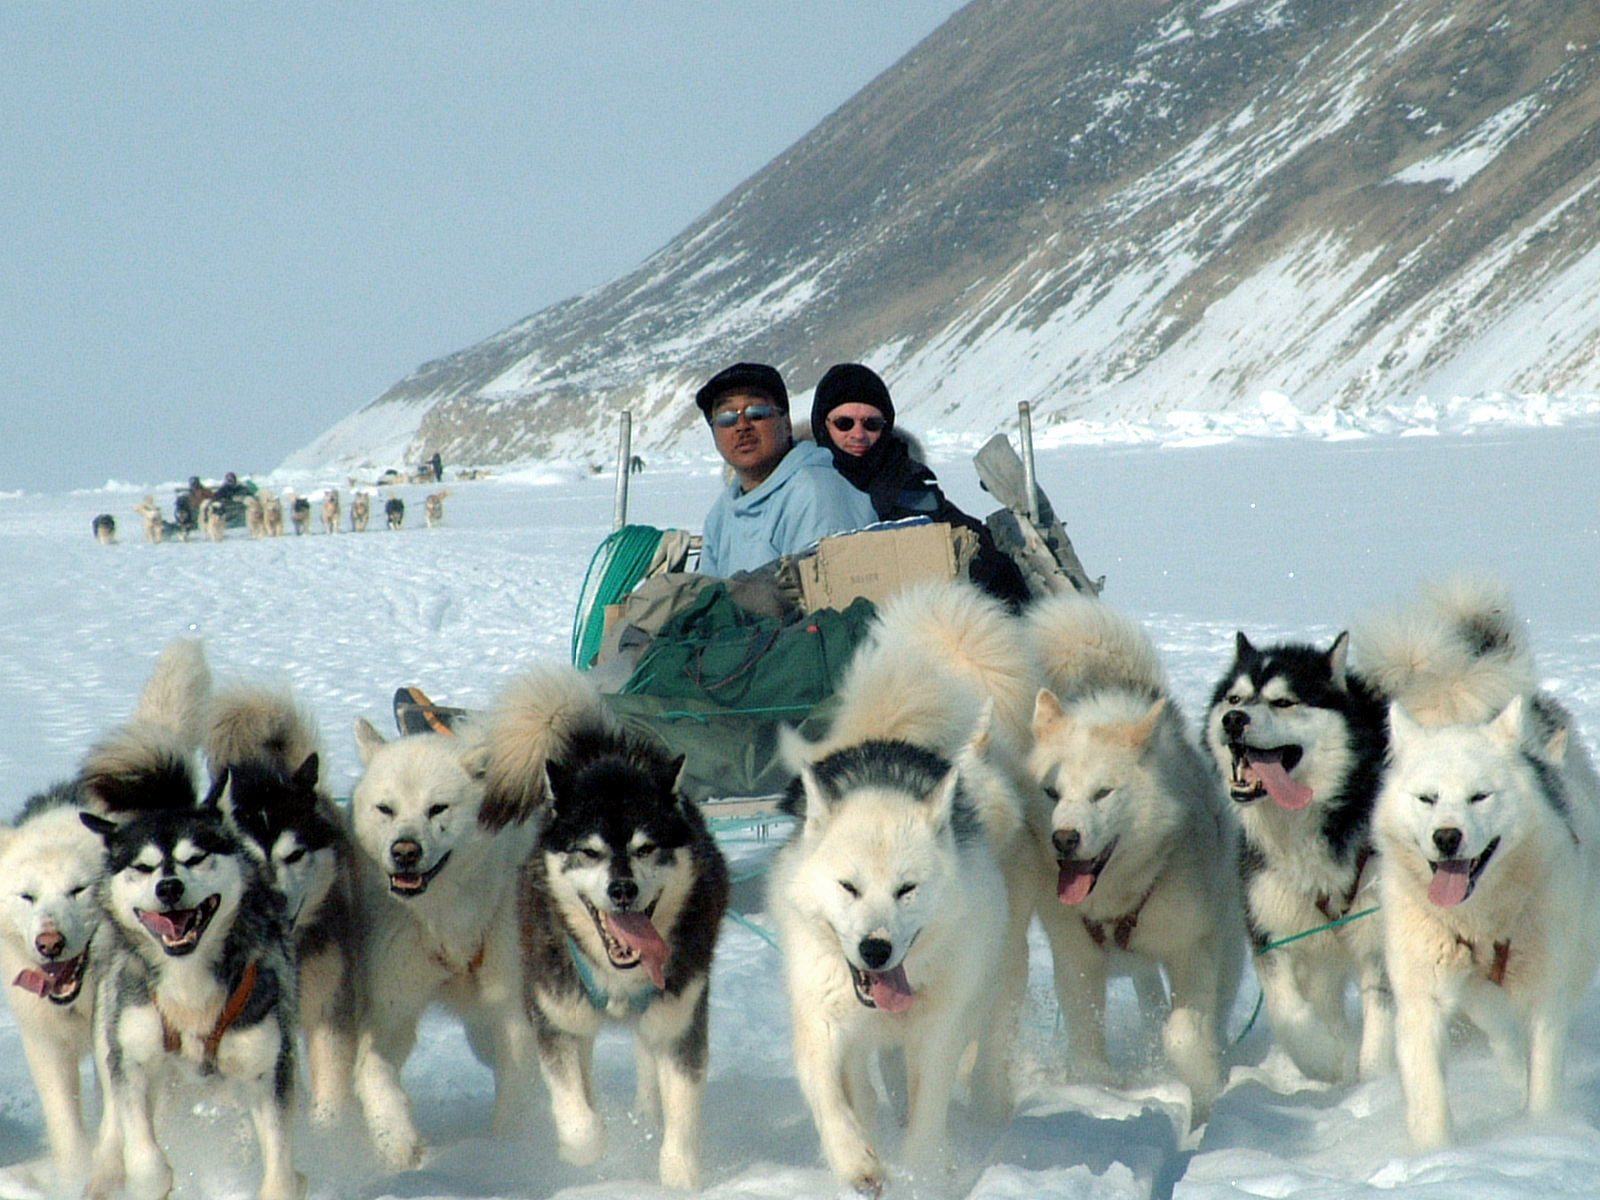 Image shows a photo of a sled carrying two men being pulled by 8 huskies.